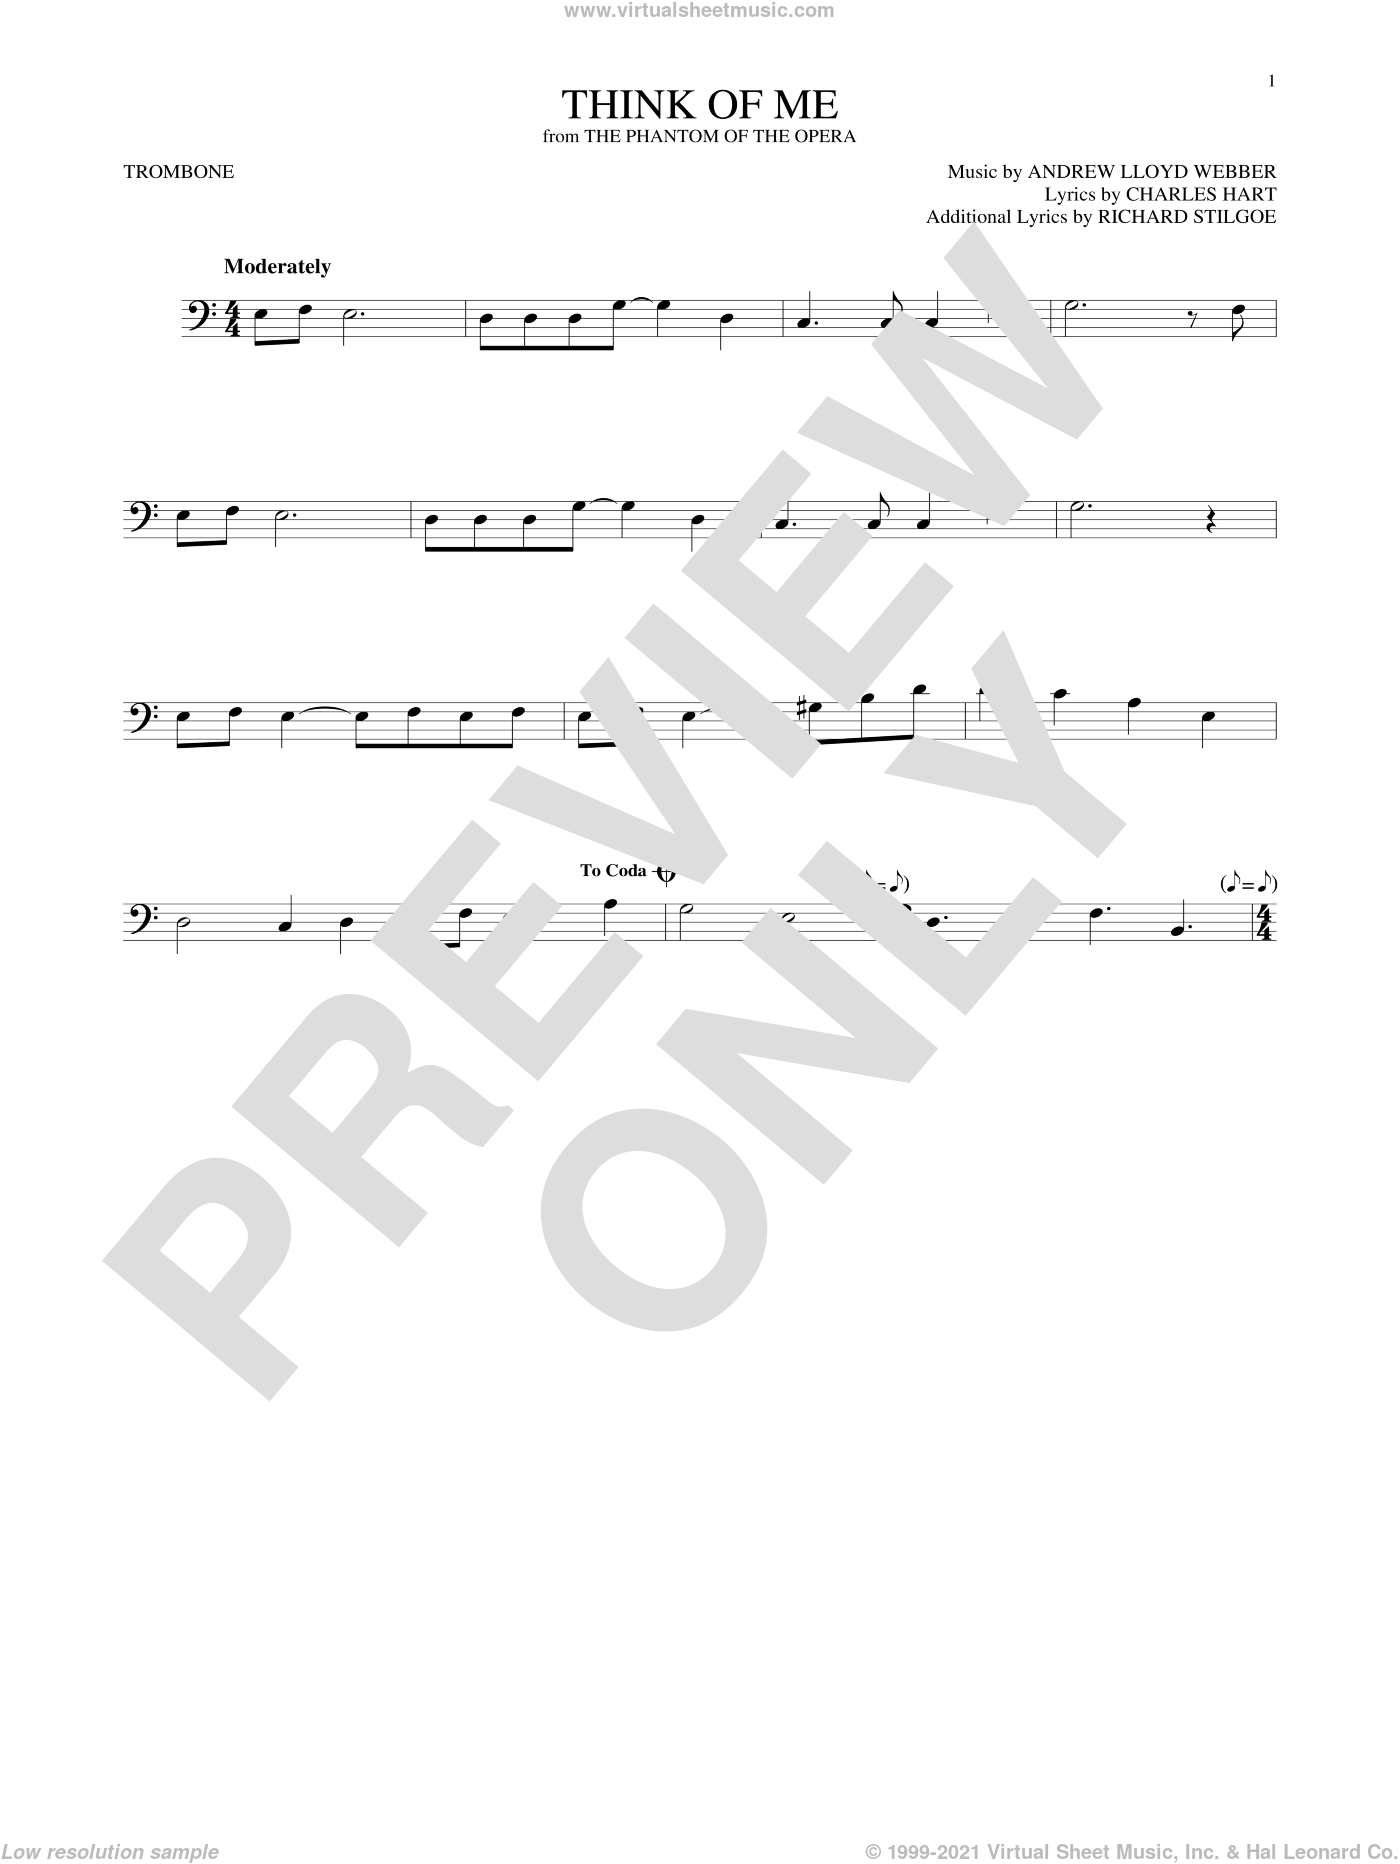 Think Of Me sheet music for trombone solo by Andrew Lloyd Webber, Charles Hart and Richard Stilgoe, intermediate skill level